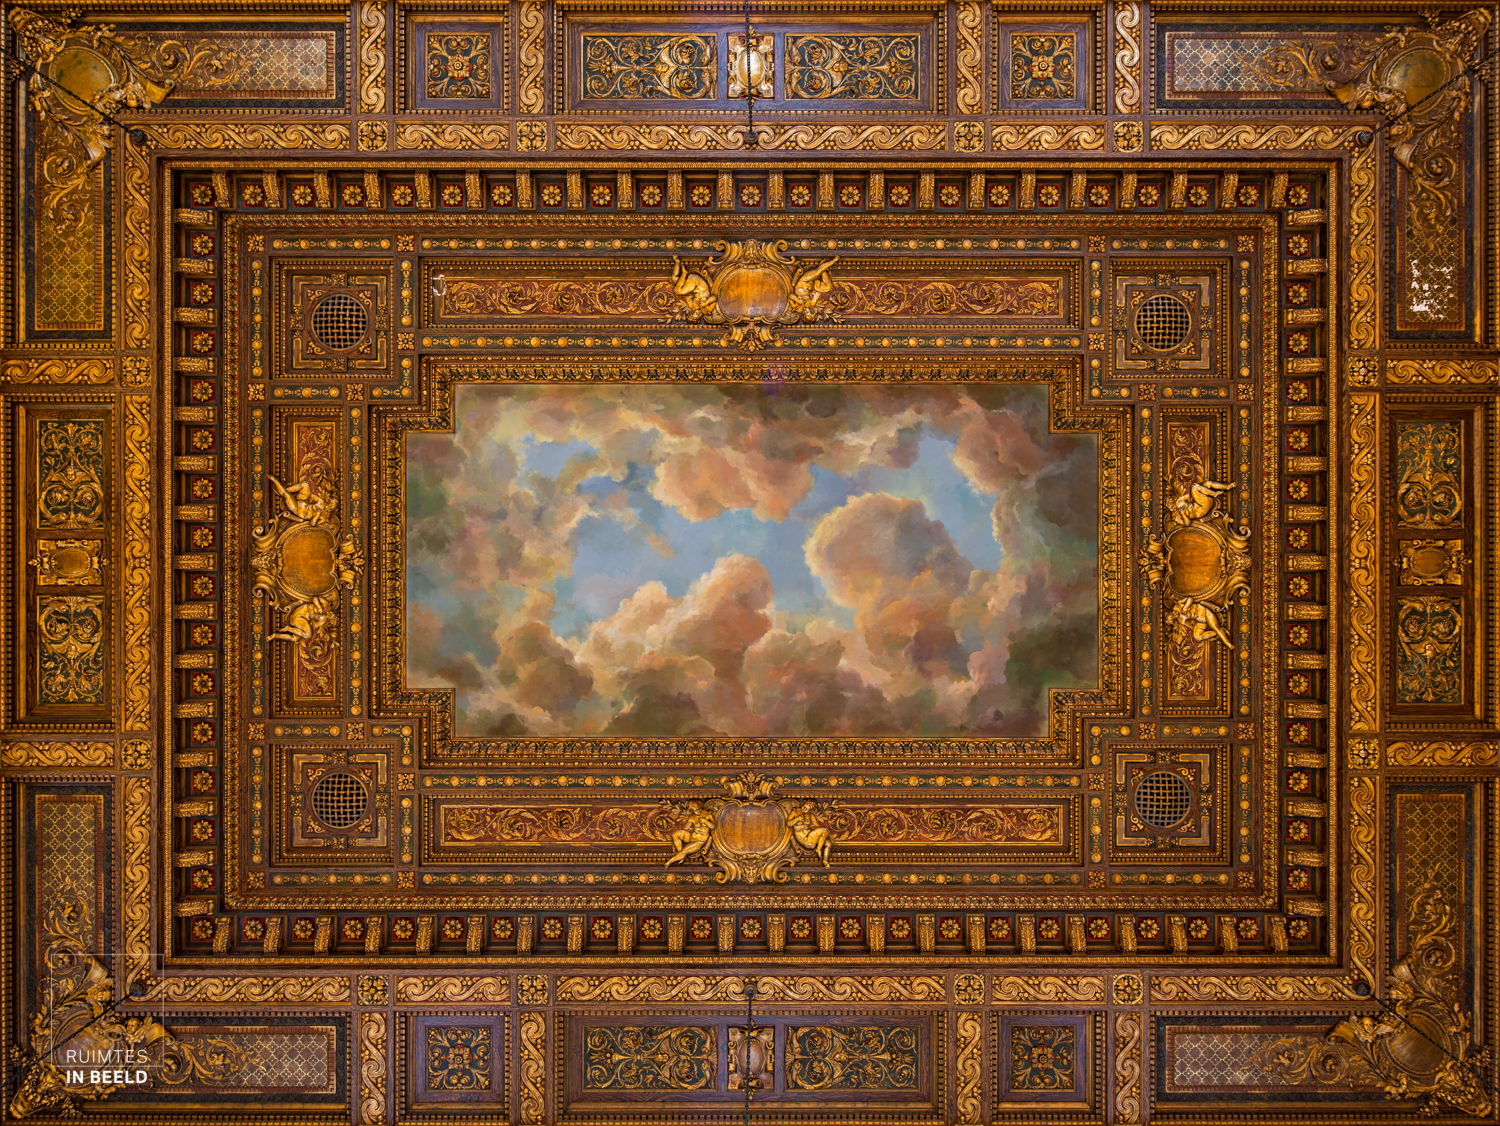 Plafond in de leeszaal in de New York Public Library USA | Ceiling in Rose reading room in the NYPL, USA